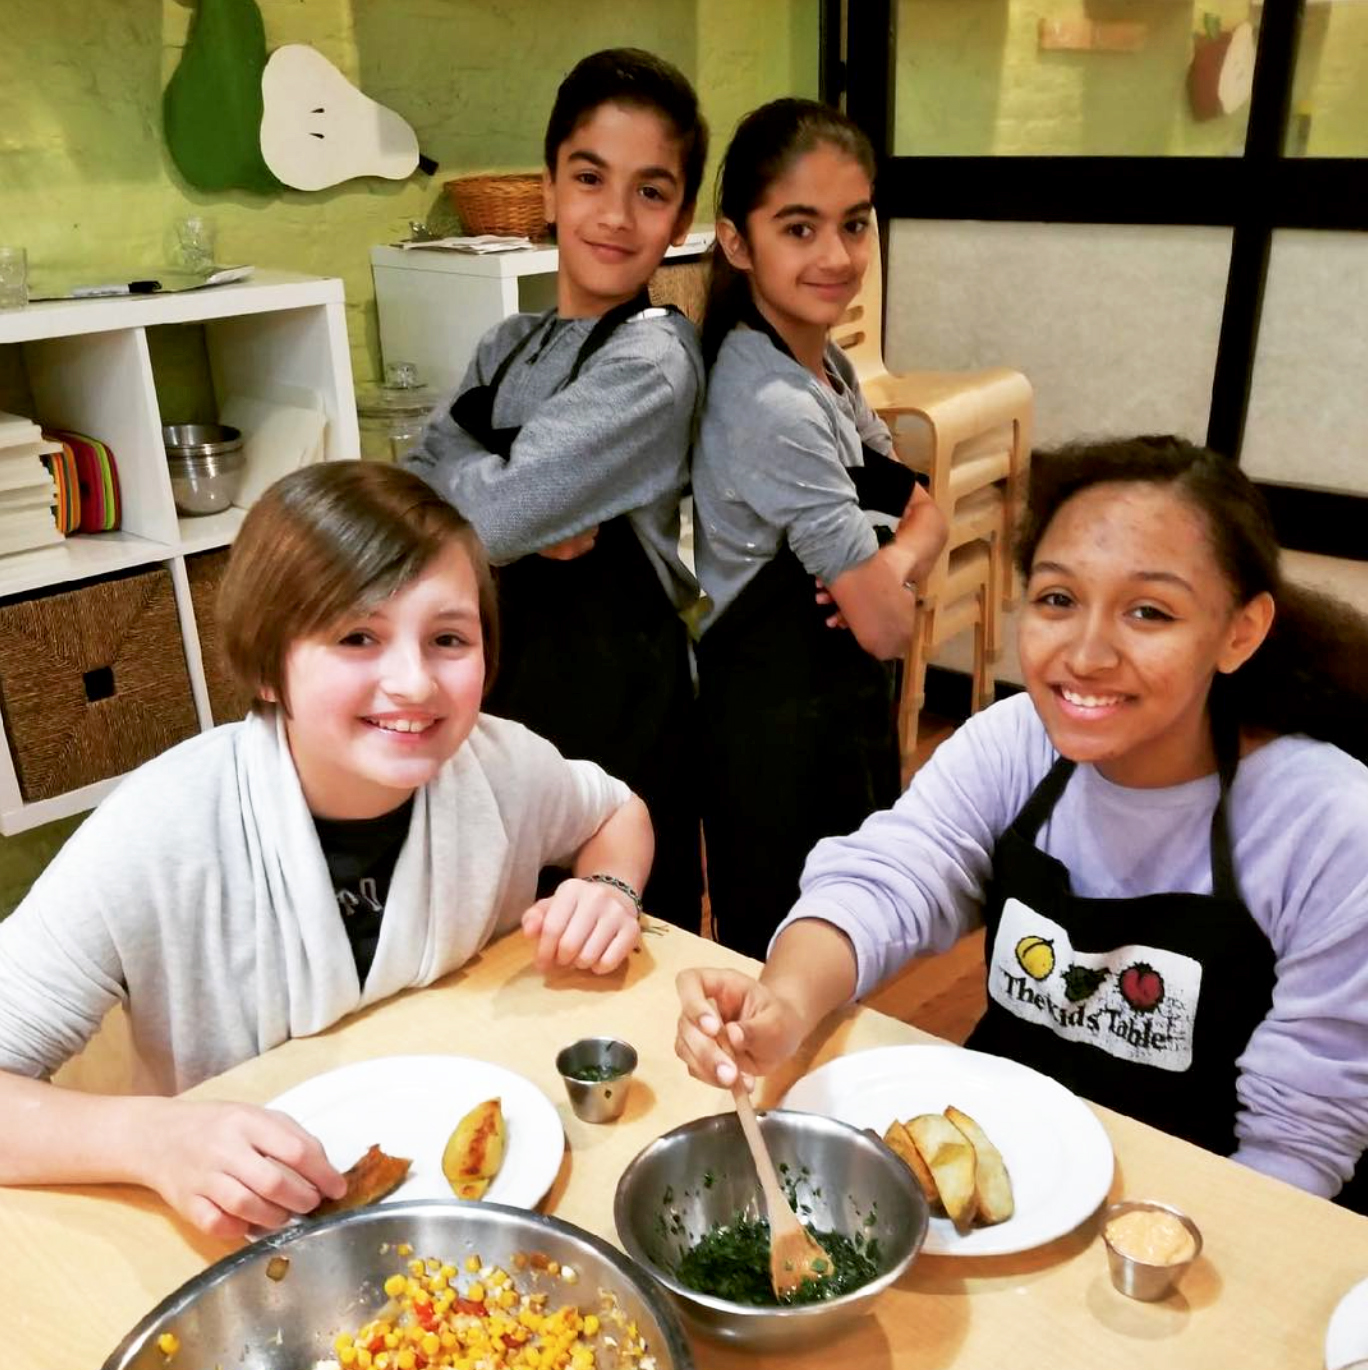 Culinary Camp for Kids: Chicago's Kids' Table Cooking Camp for Teens | Cool Mom Eats